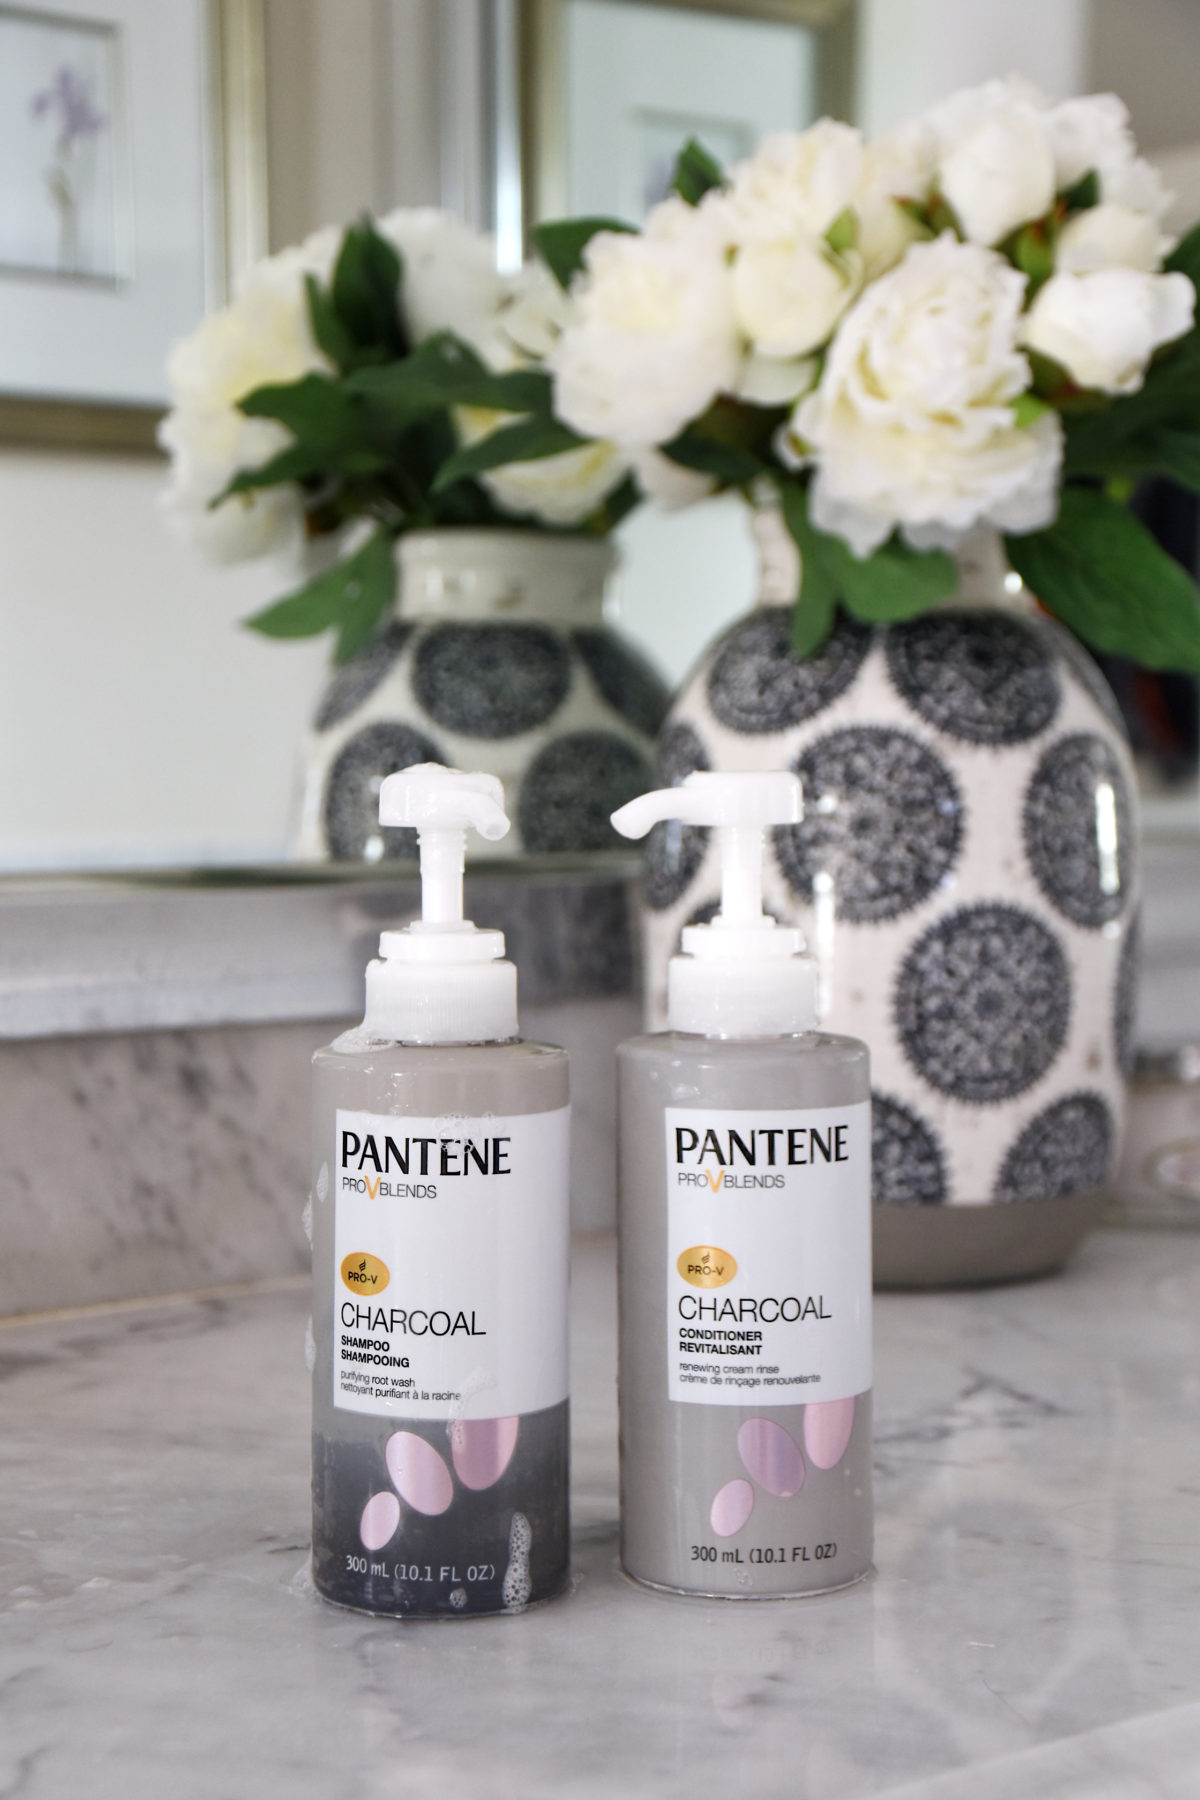 Pantene Charcoal shampoo and conditioner